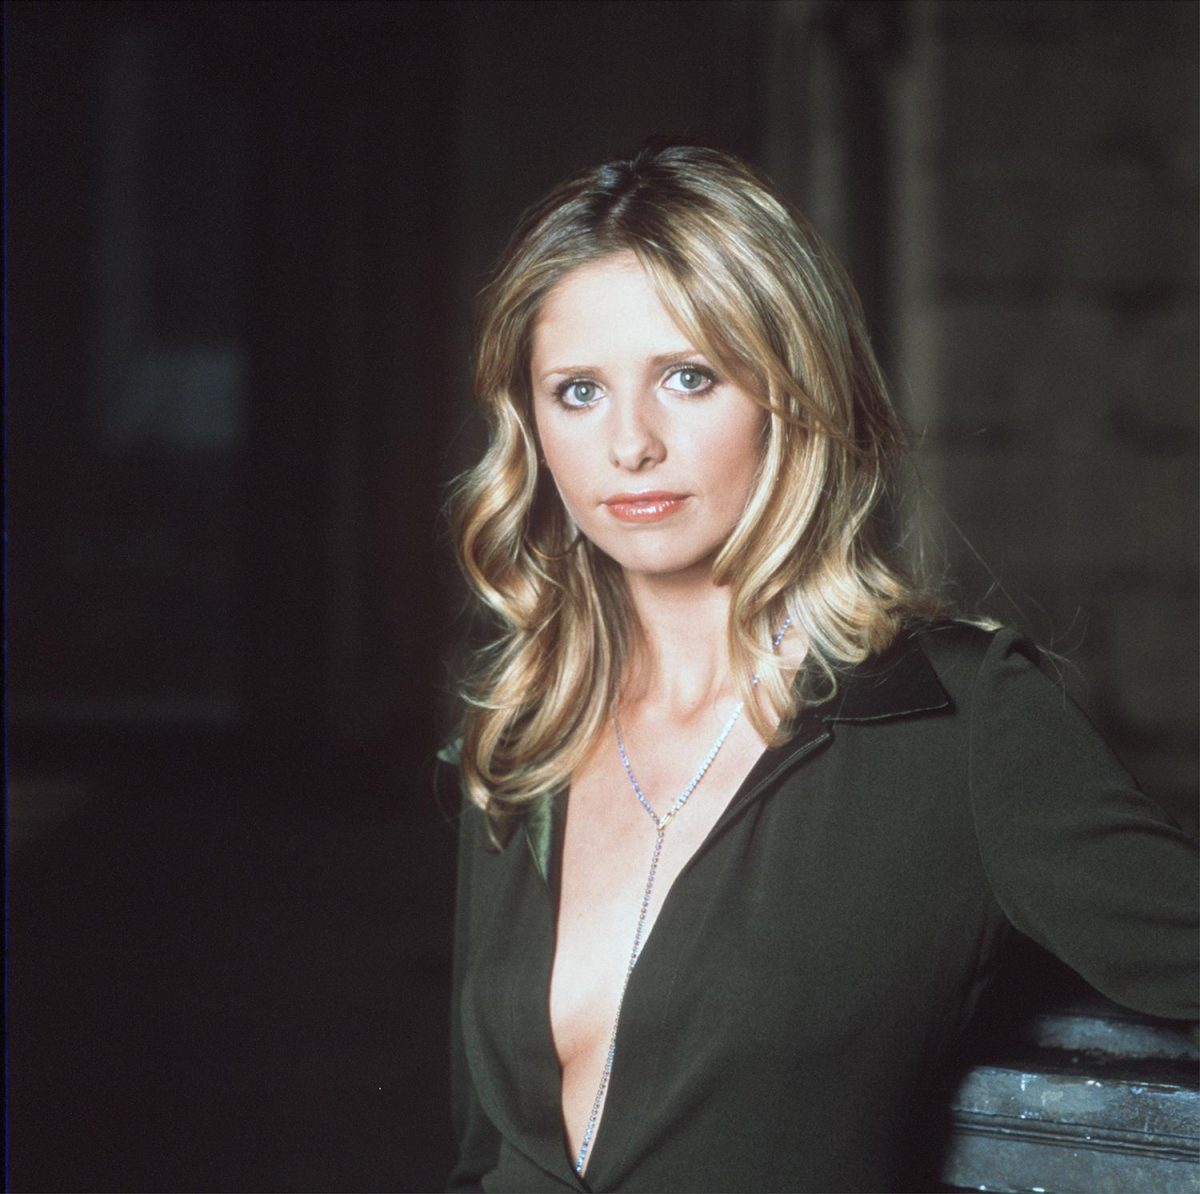 Sarah Michelle Gellar as Buffy in 'Buffy the Vampire Slayer'